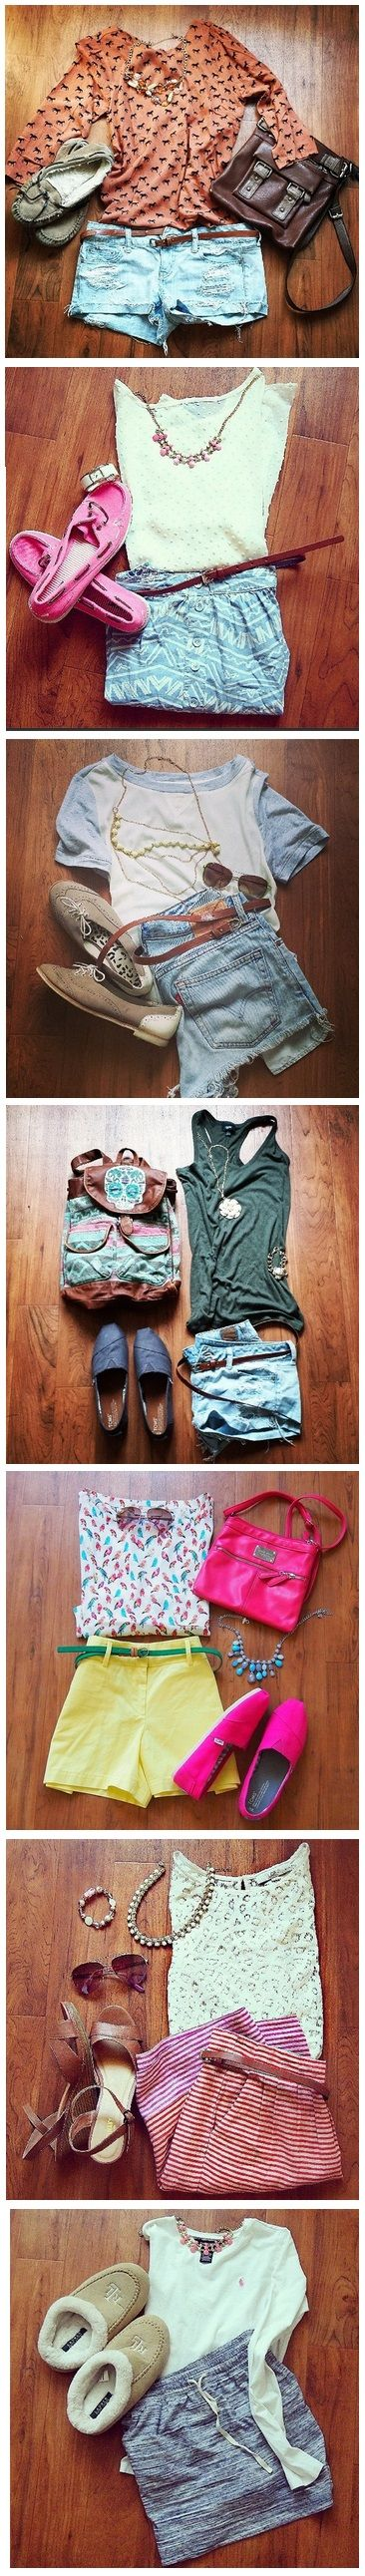 Cute outfits for everyday life